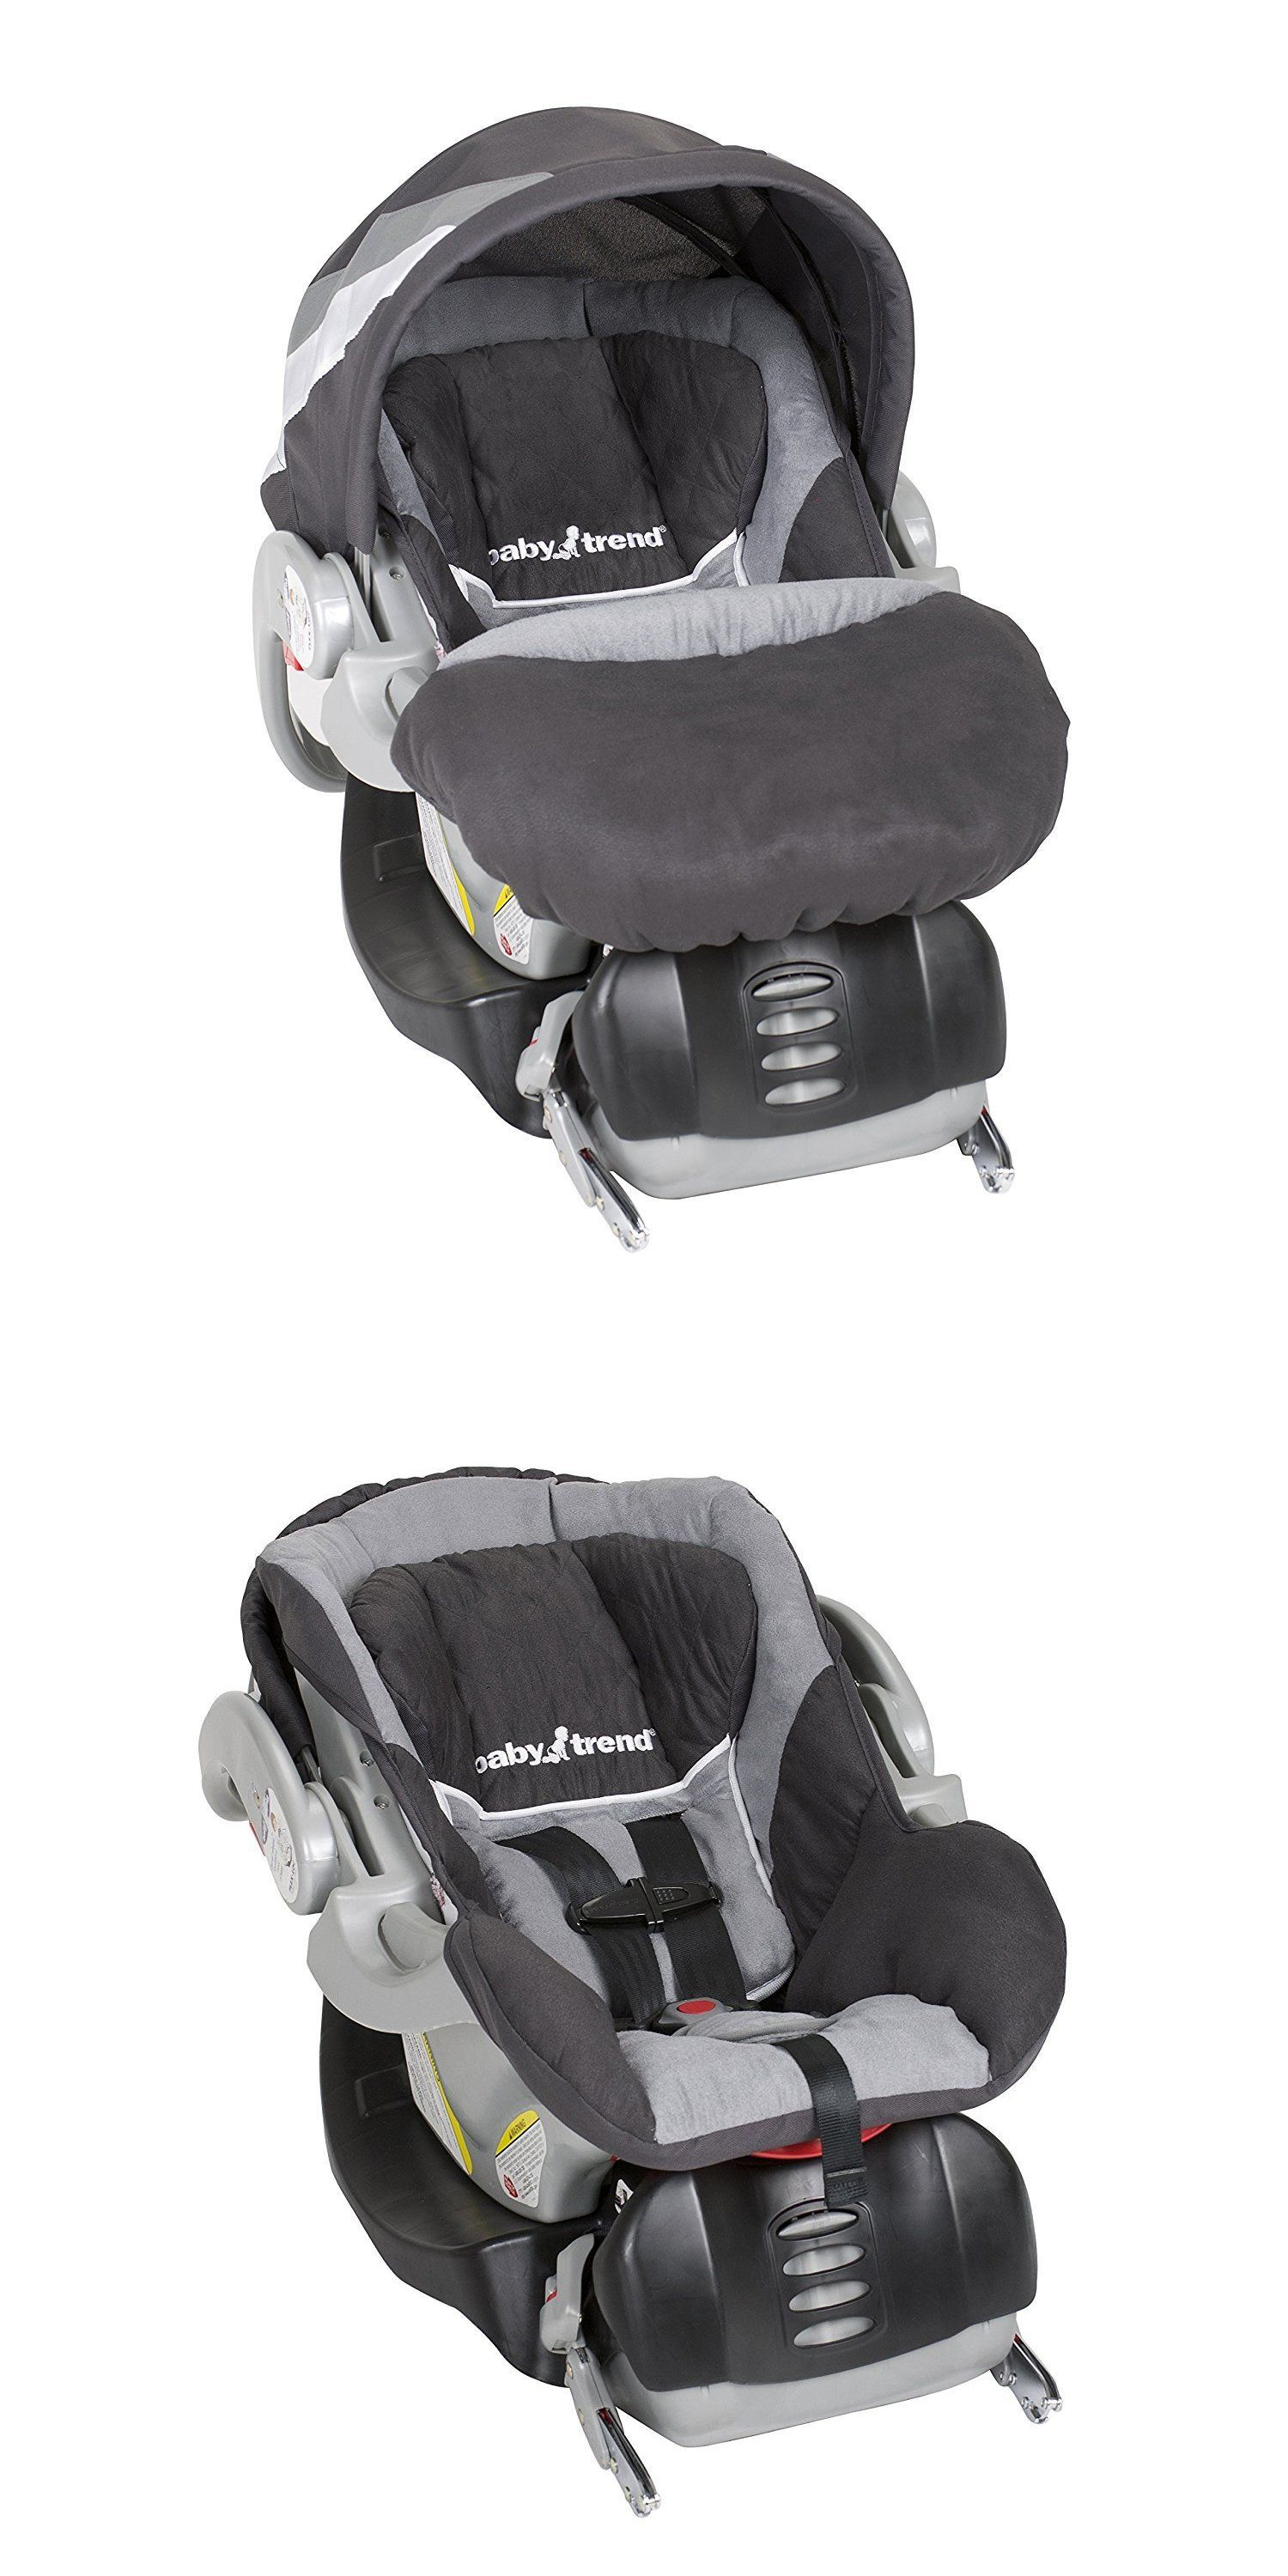 Car Safety Seats 66692 Baby Trend Flex Loc Infant Seat Liberty BUY IT NOW ONLY 8099 On EBay